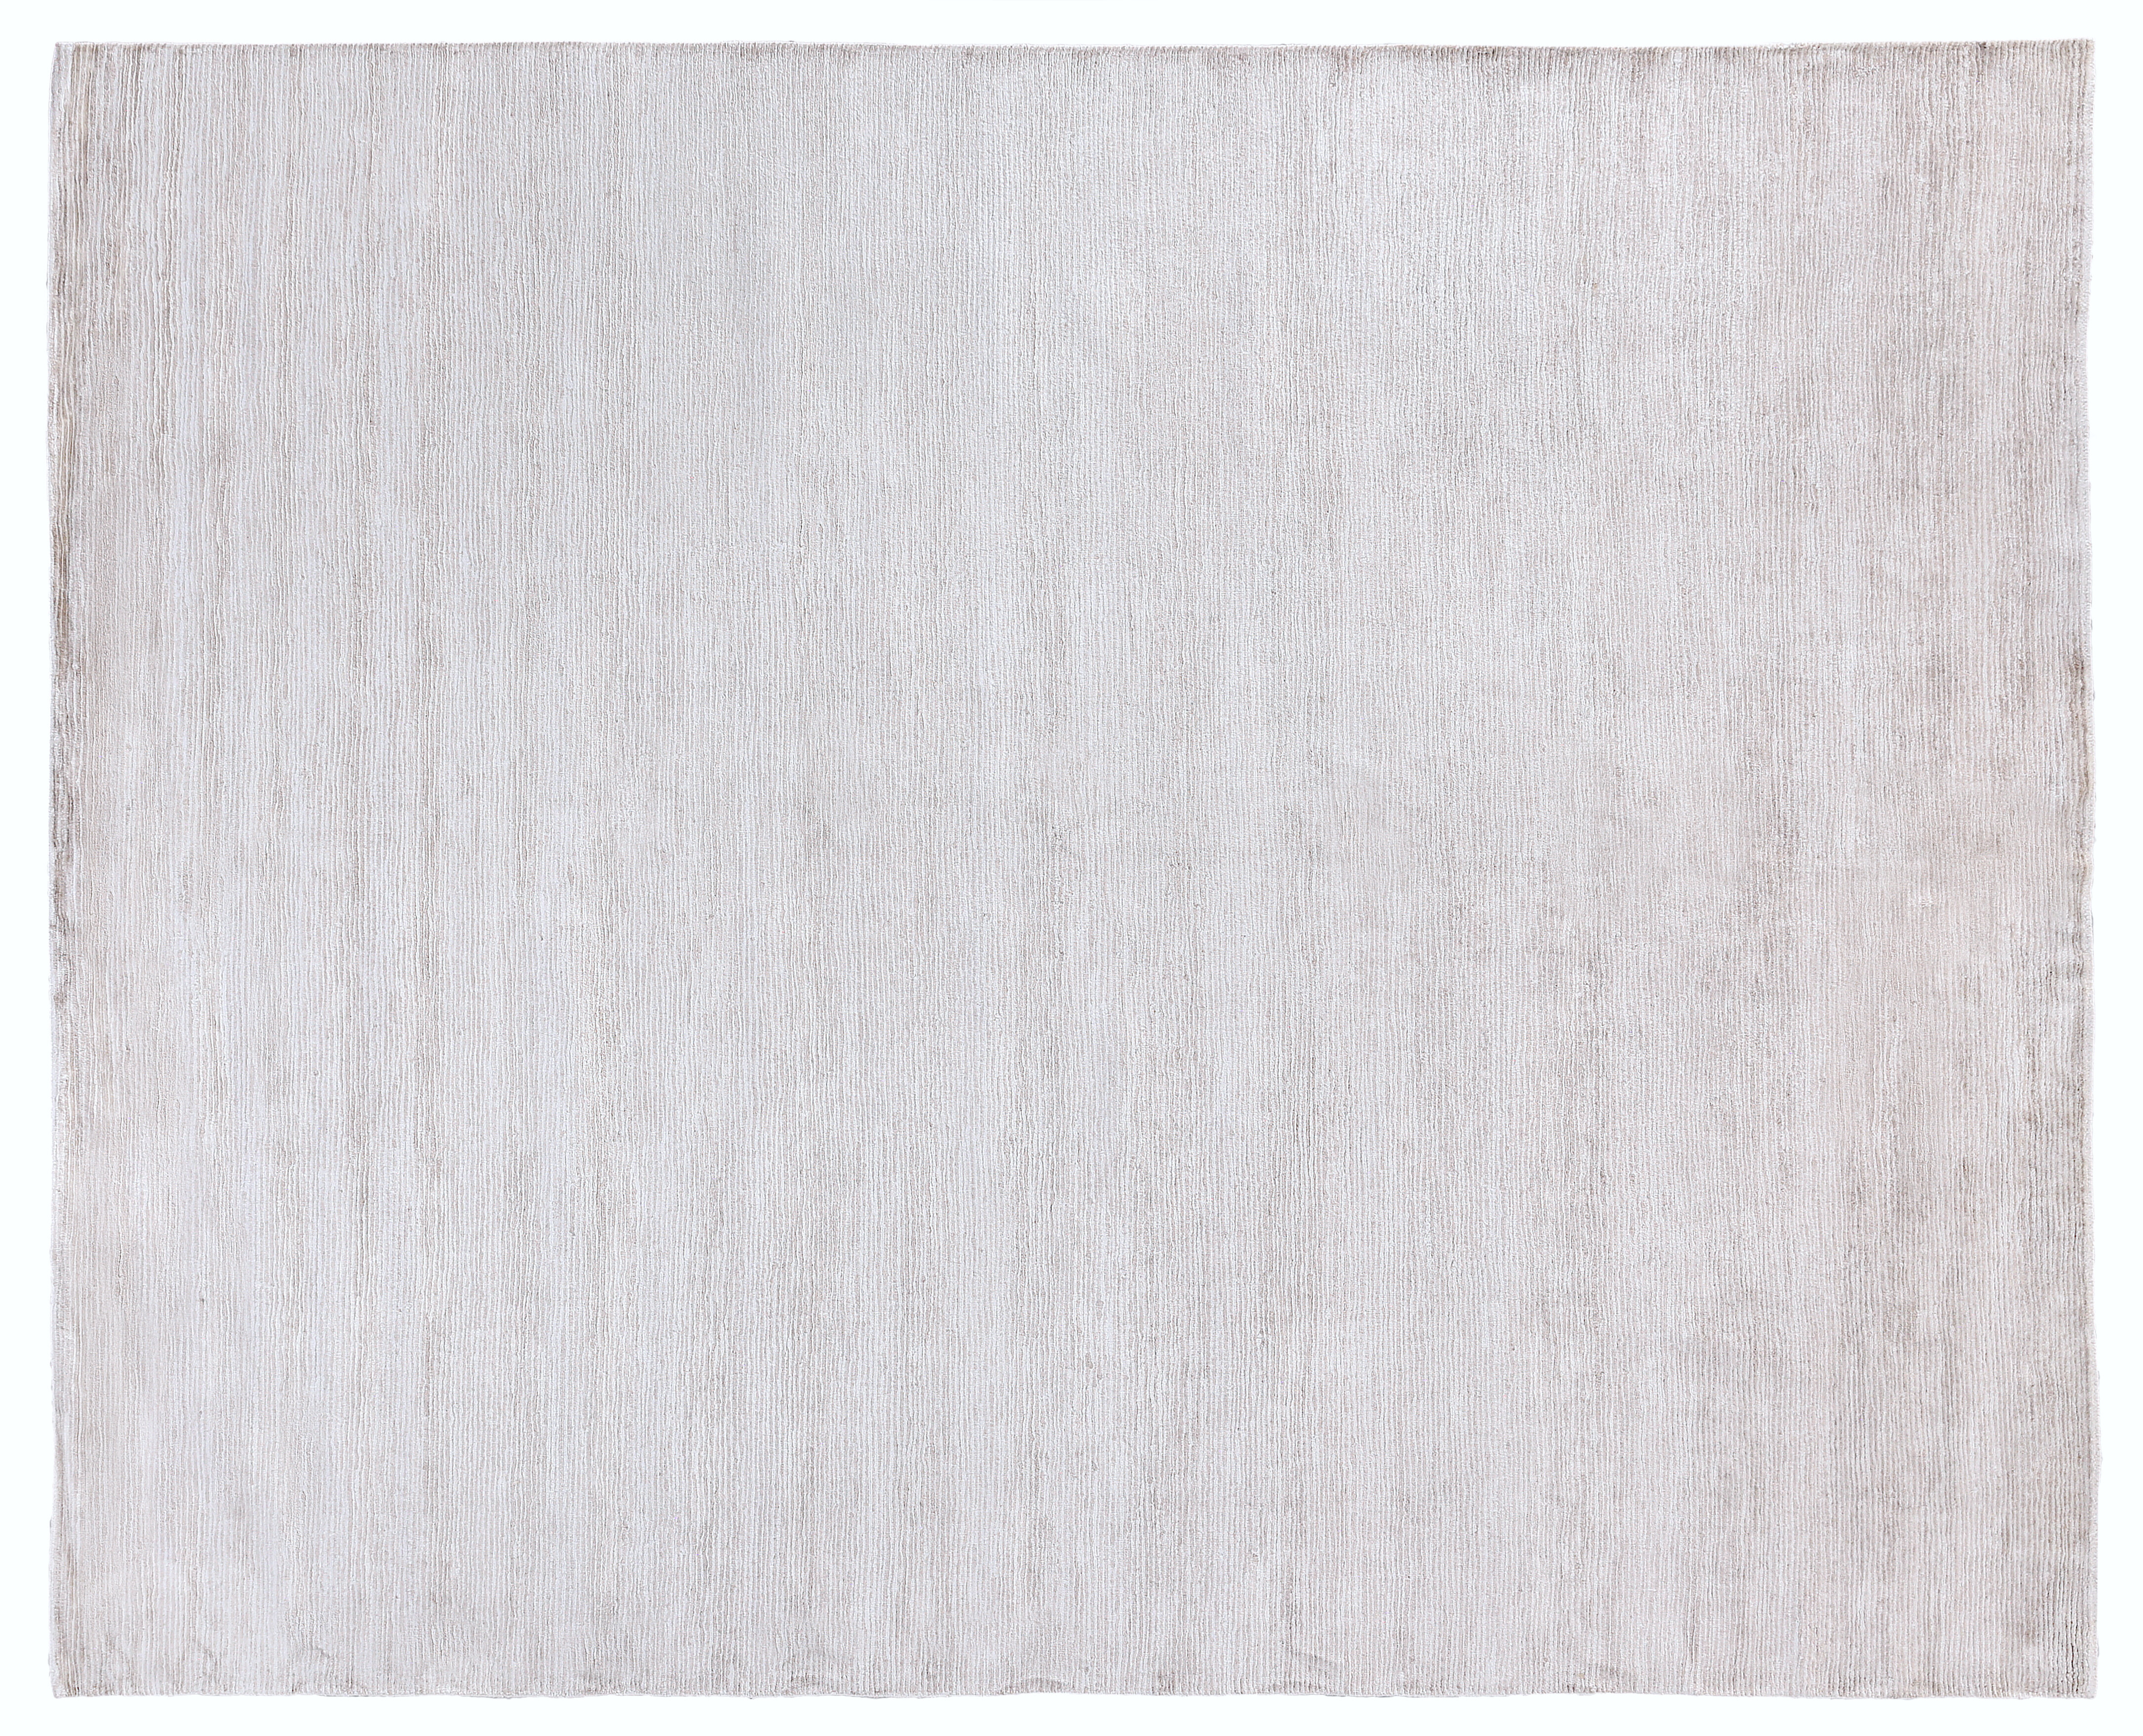 Exquisite Rugs Lambert Hand Knotted Silk Beige Ivory Rug Perigold